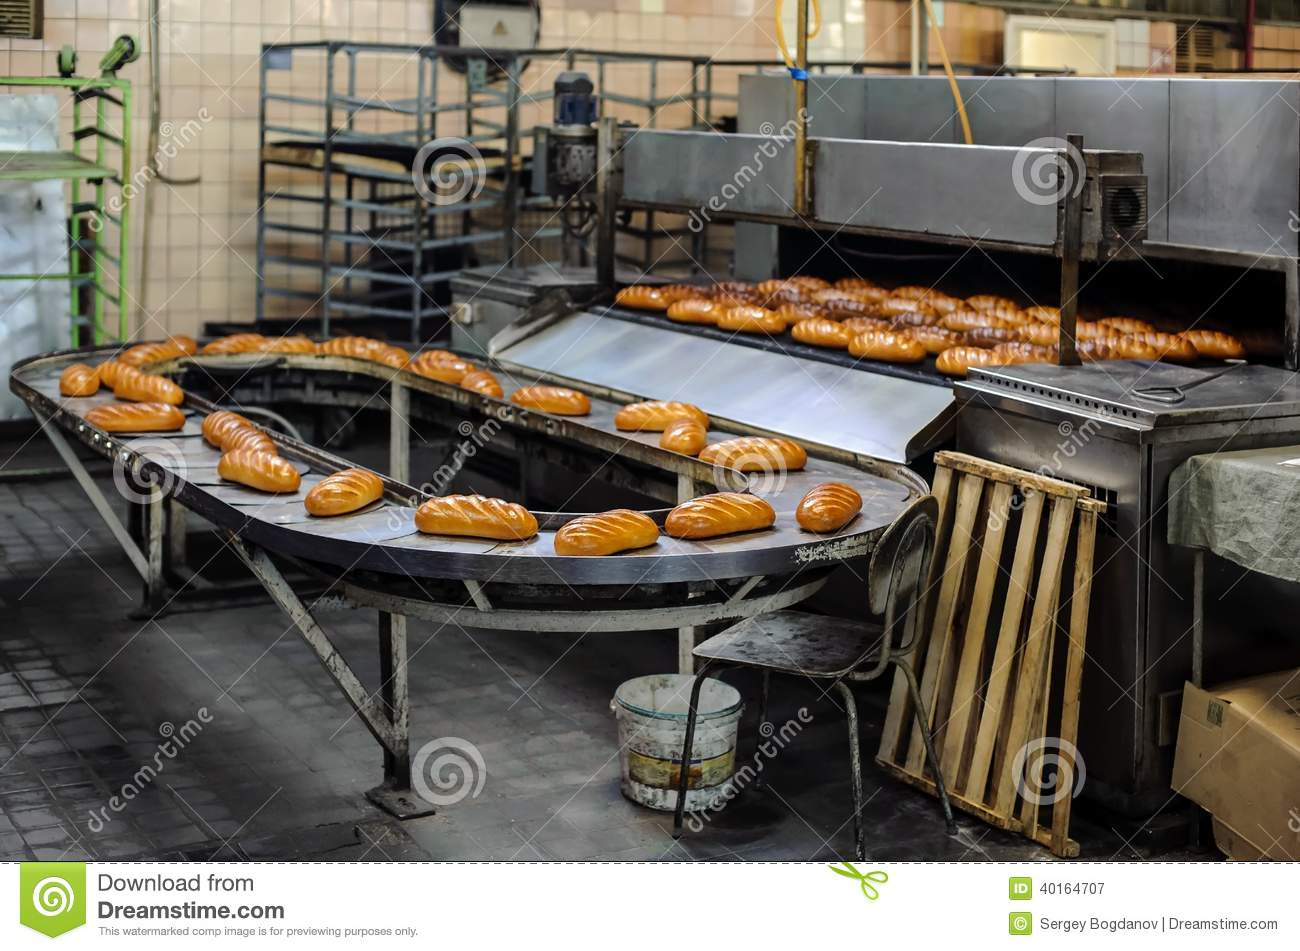 Breads on production line at bakery